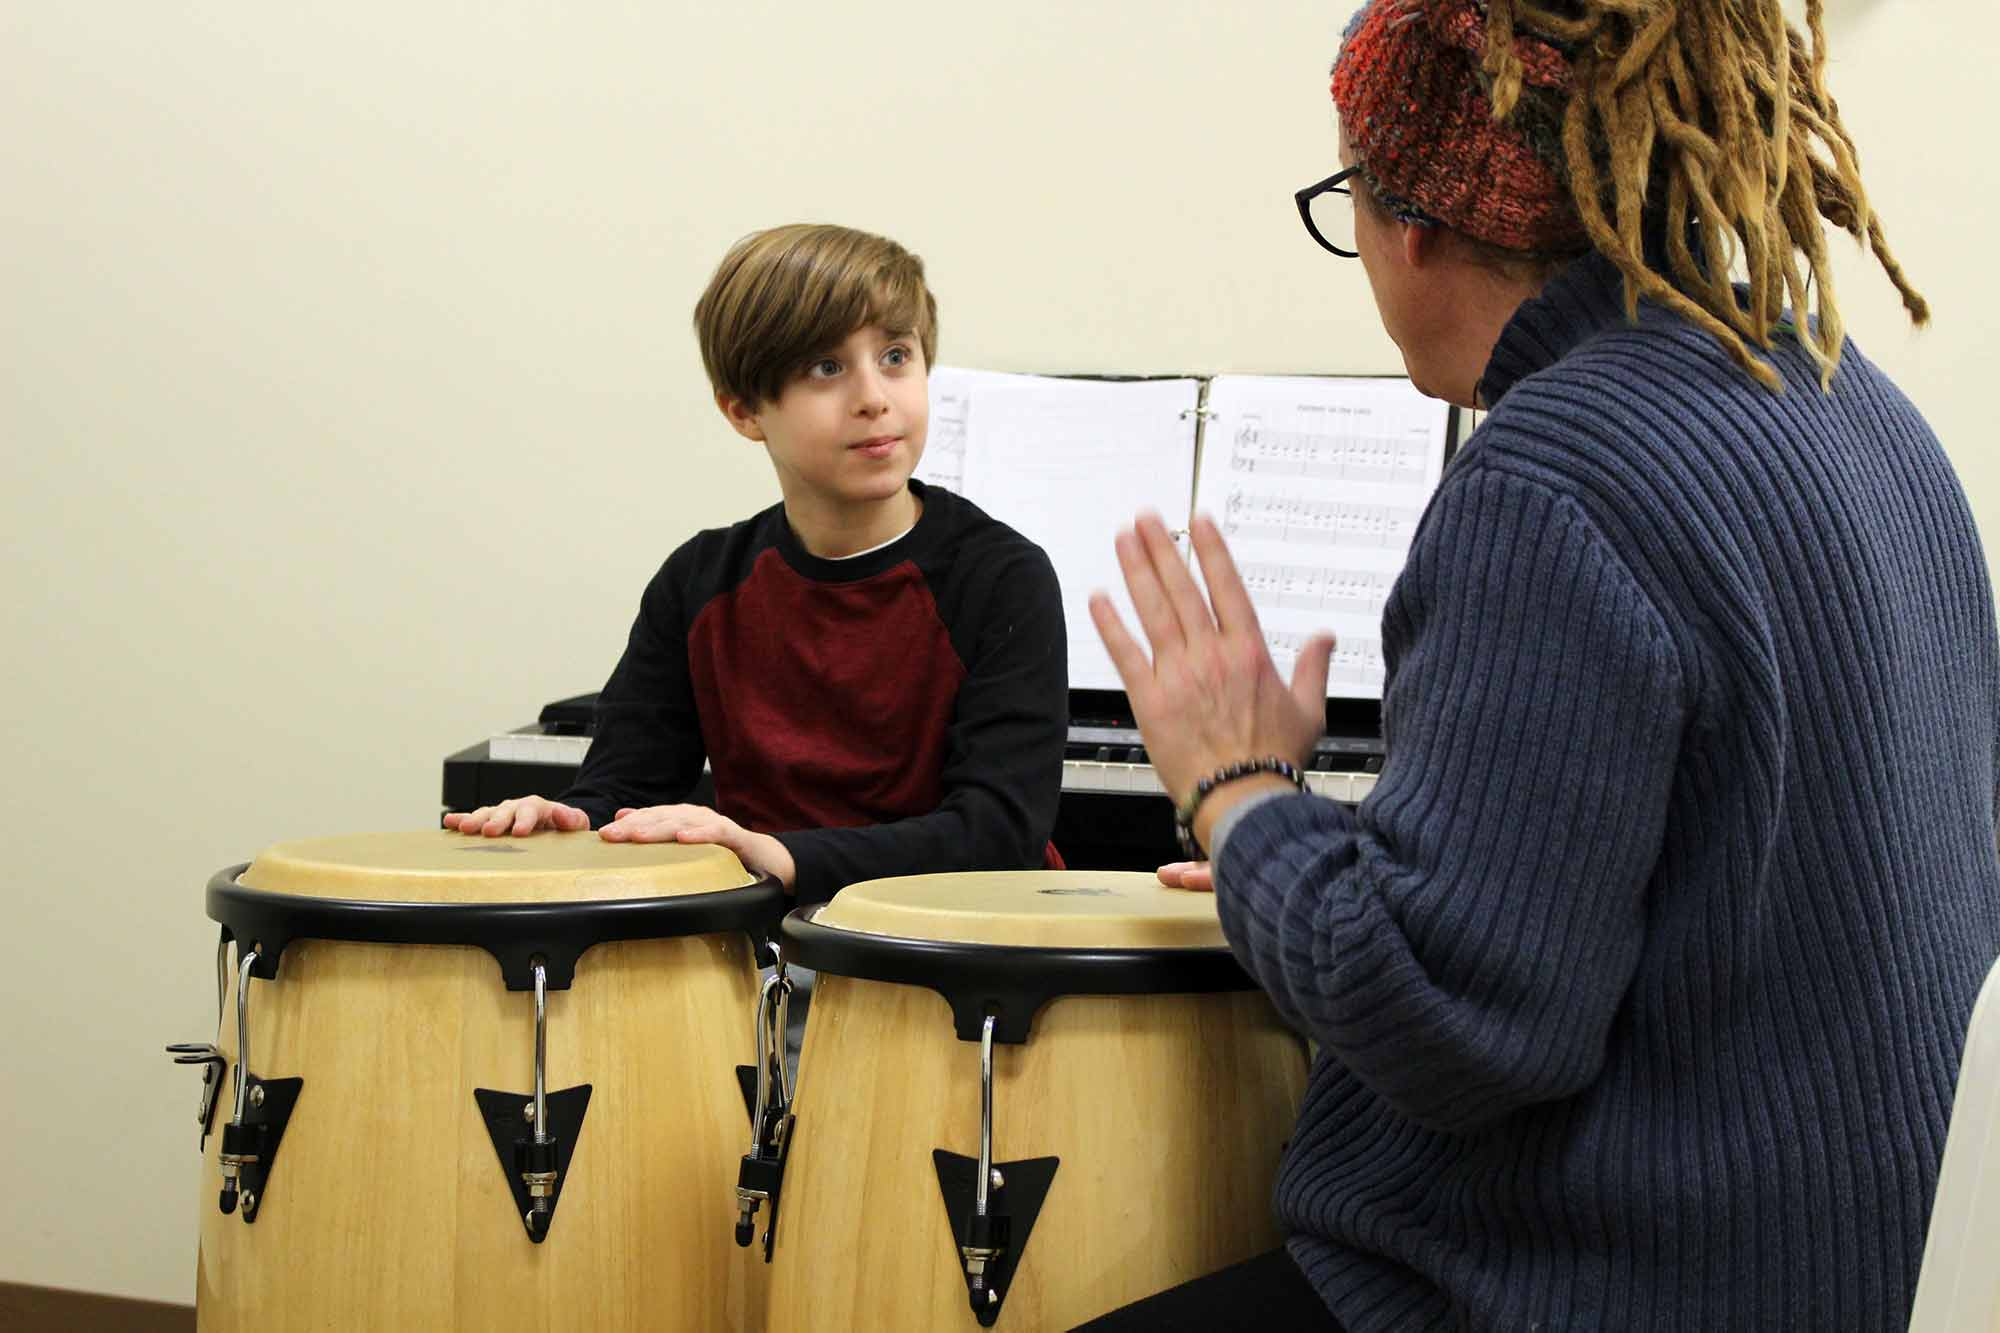 sing-explore-create-rockland-ma-music-art-therapy-drum-duo